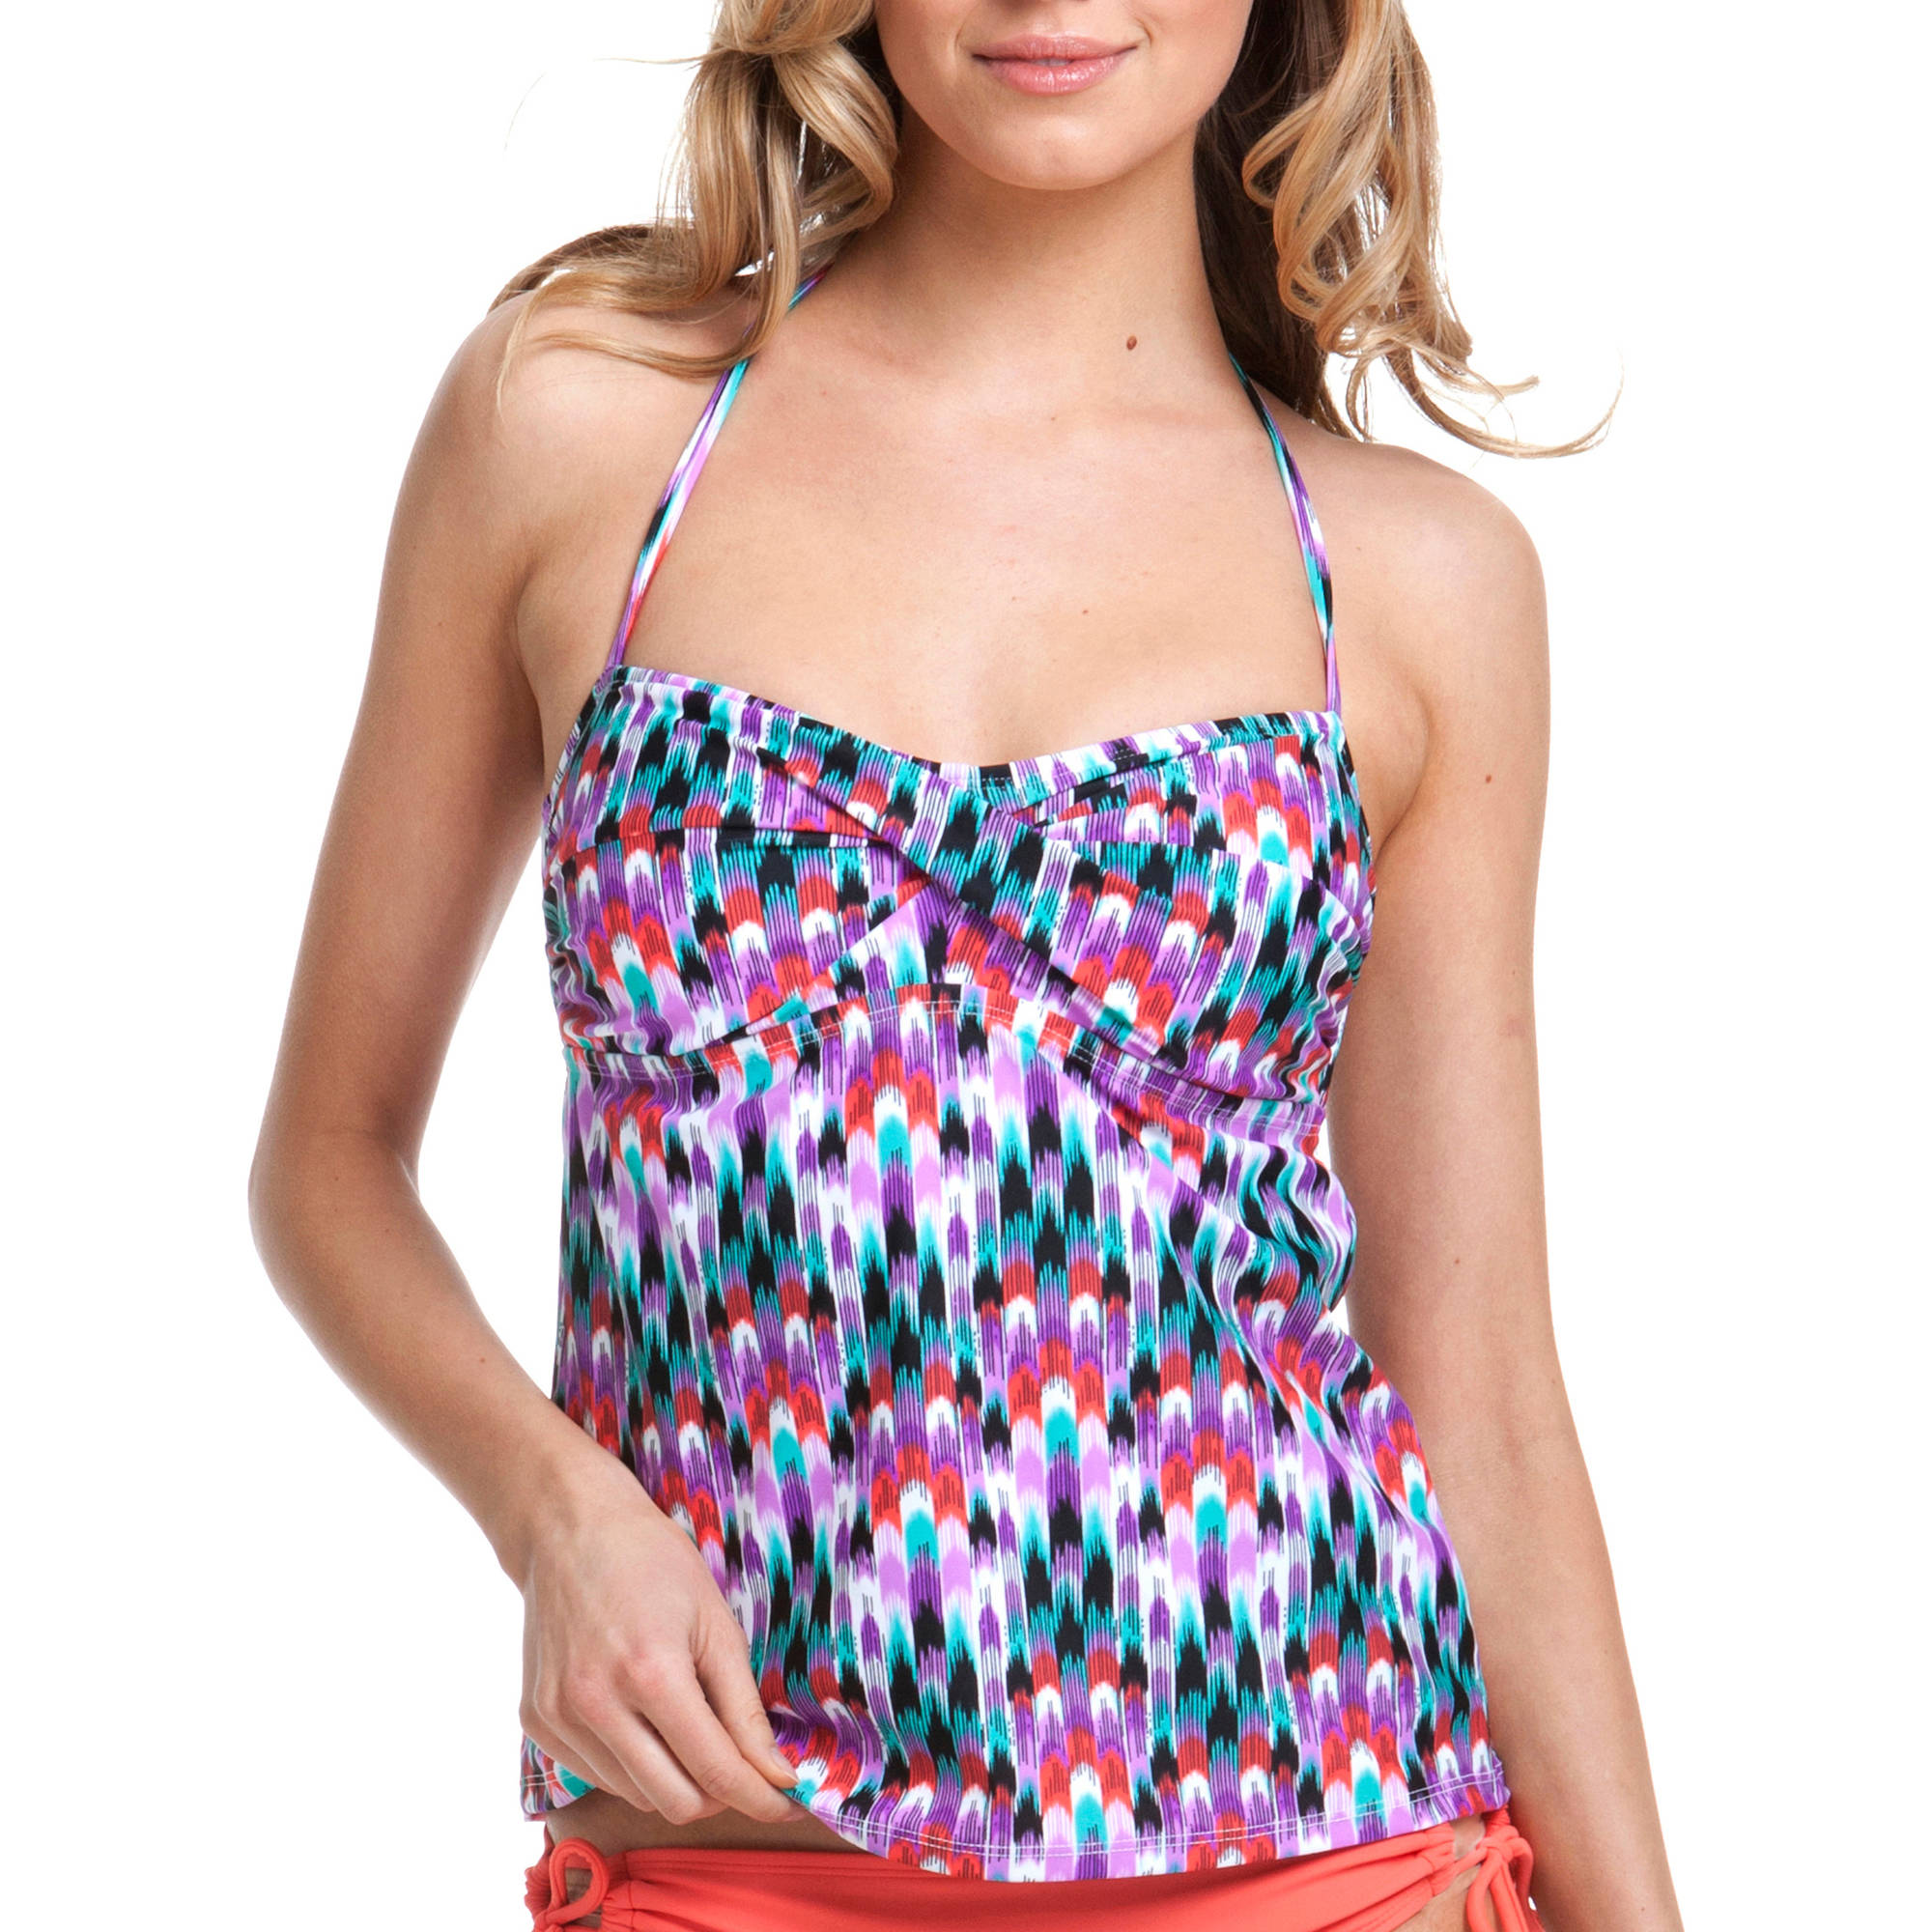 Catalina Women's Twist Bandeau Tankini Top